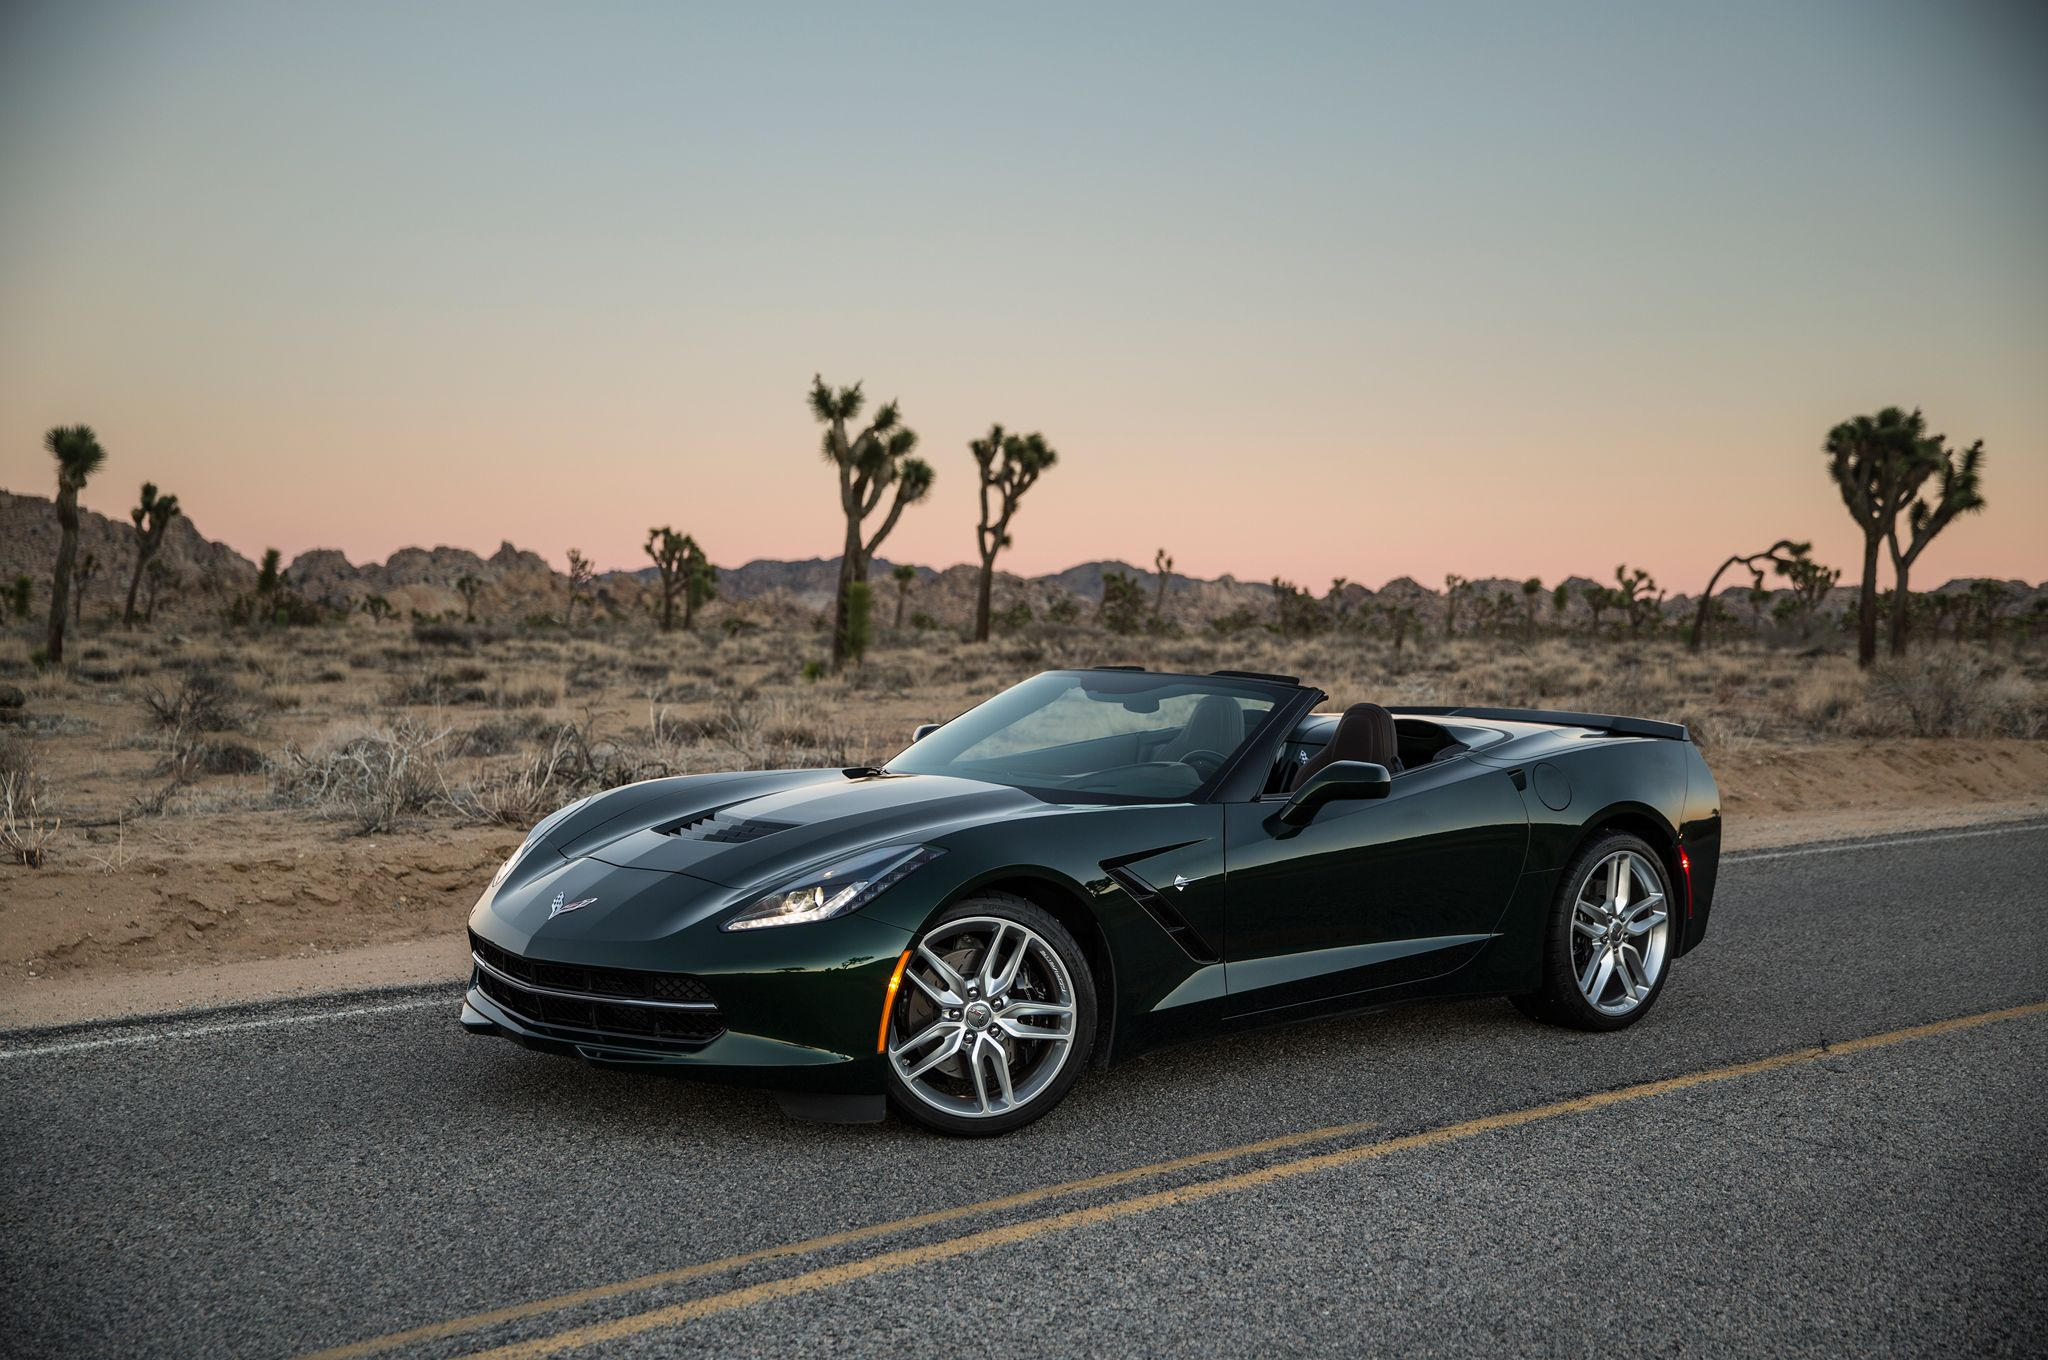 2017 chevrolet corvette convertible - https://plus.google